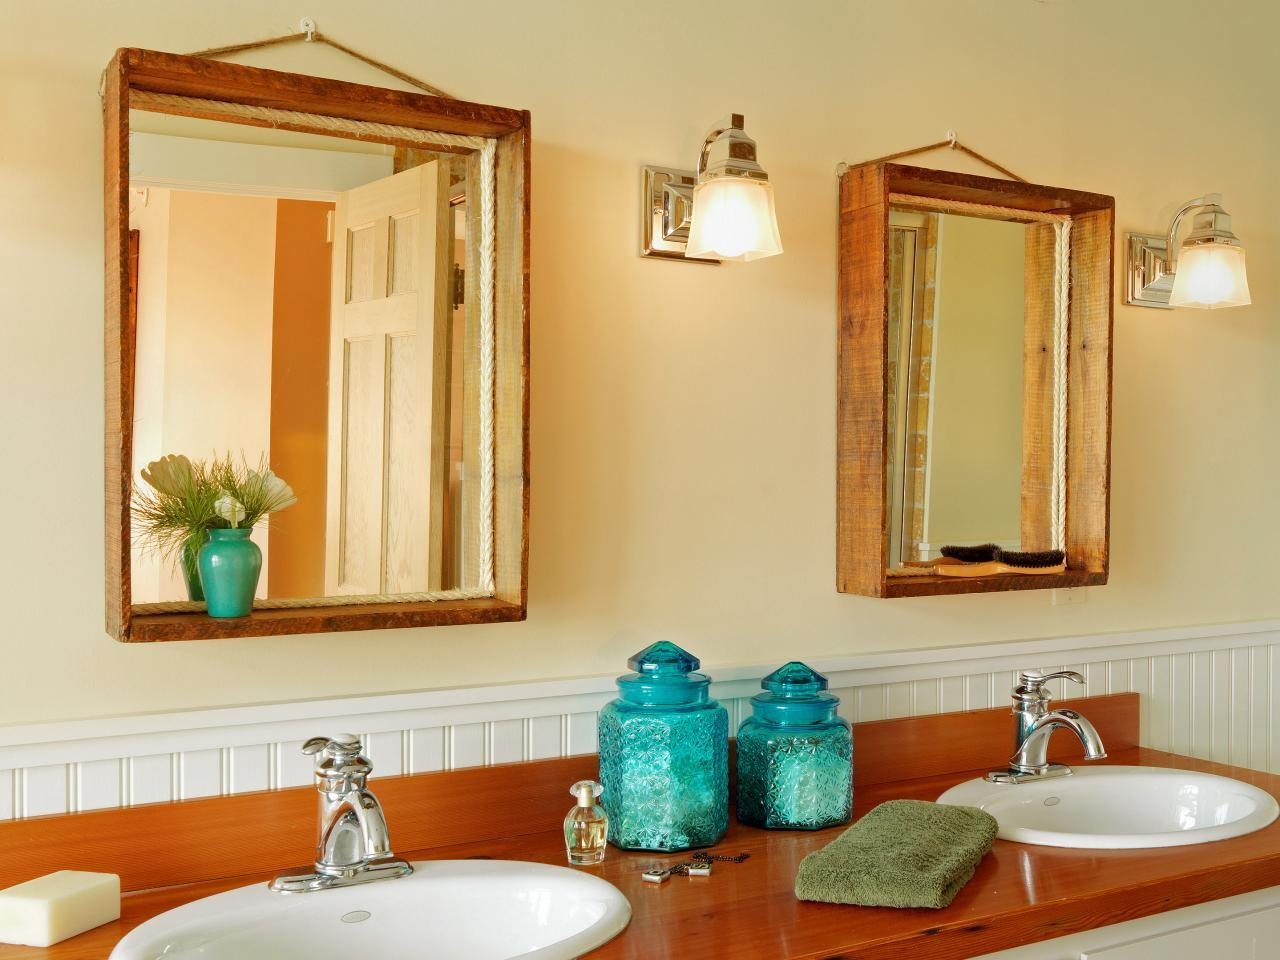 How To Turn A Wood Crate Into A Mirror Frame | How Tos | Diy Inside Vintage Wood Mirrors (Image 10 of 20)